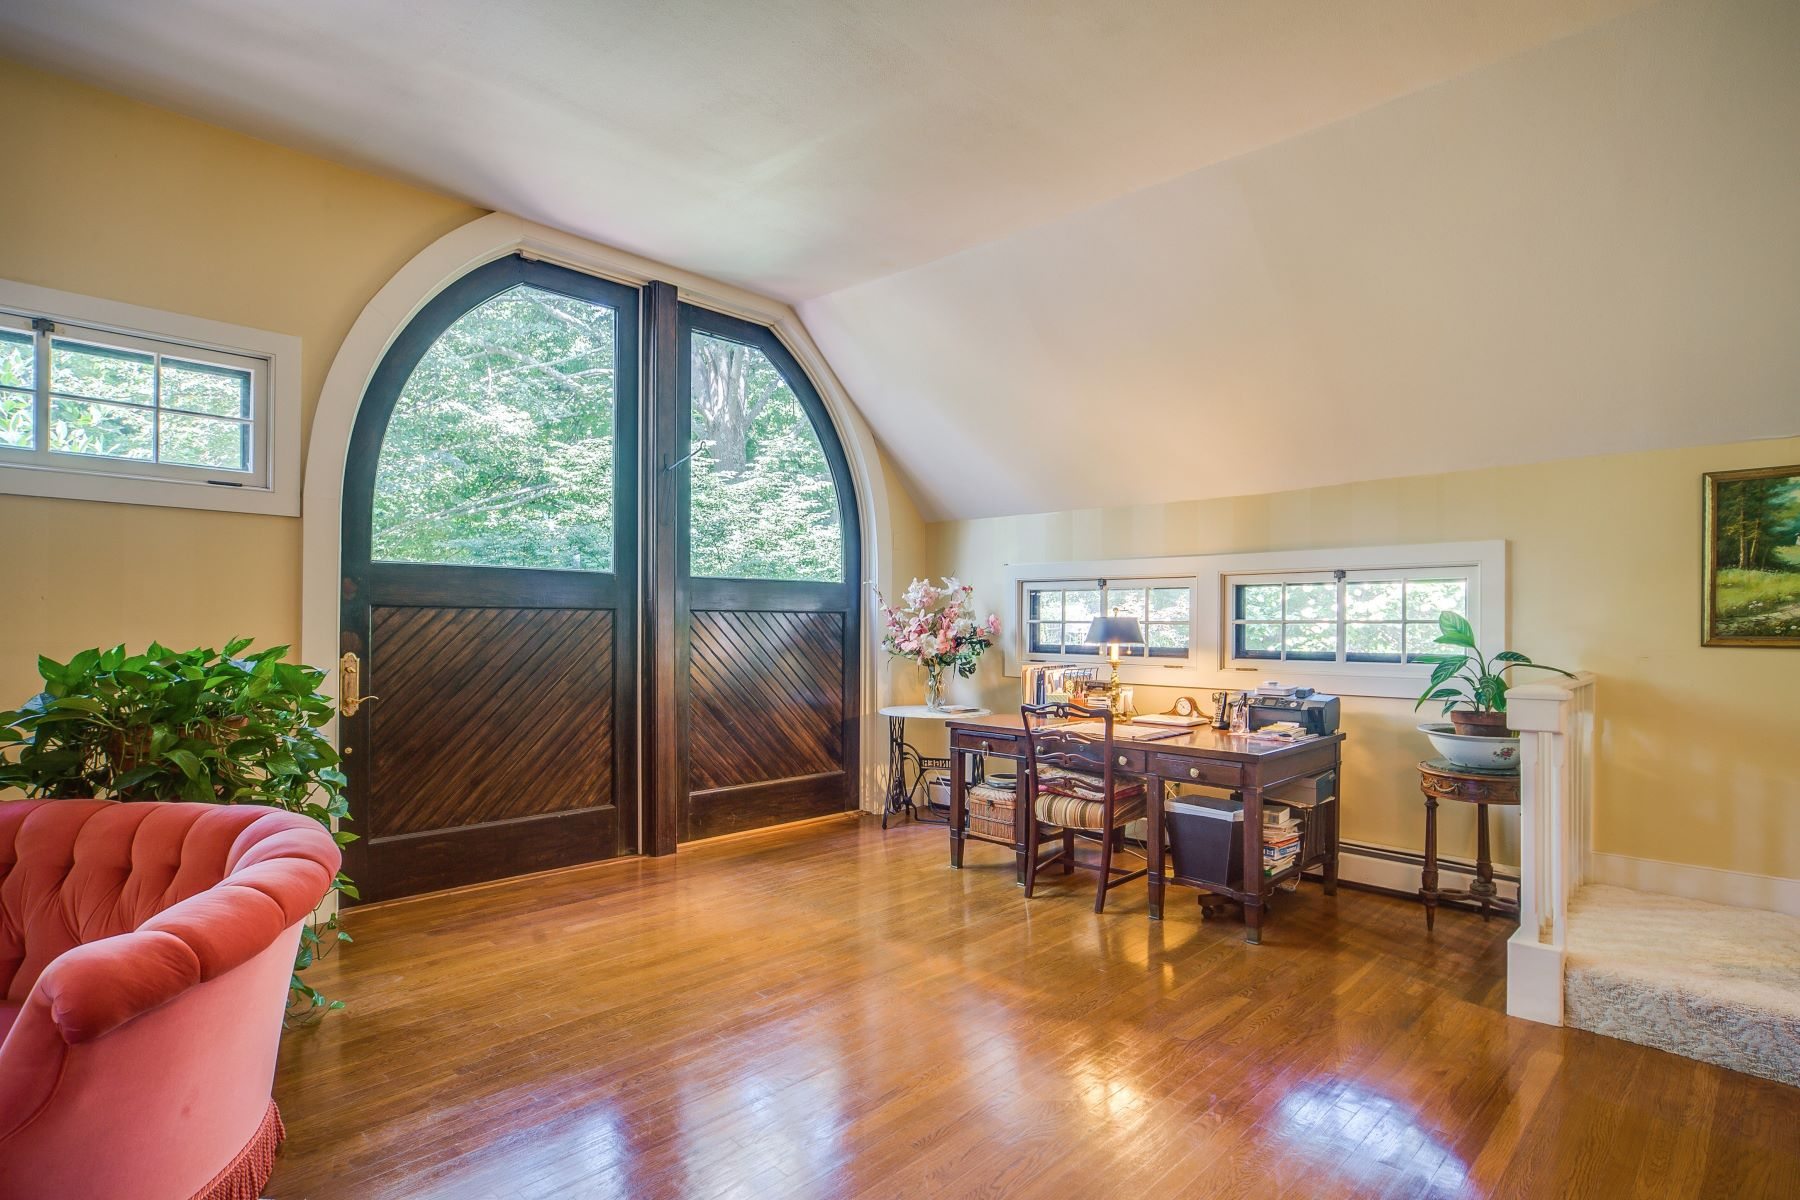 Additional photo for property listing at Oakwold Carriage House 107 Old Beach Road 5 Newport, Rhode Island 0284 United States